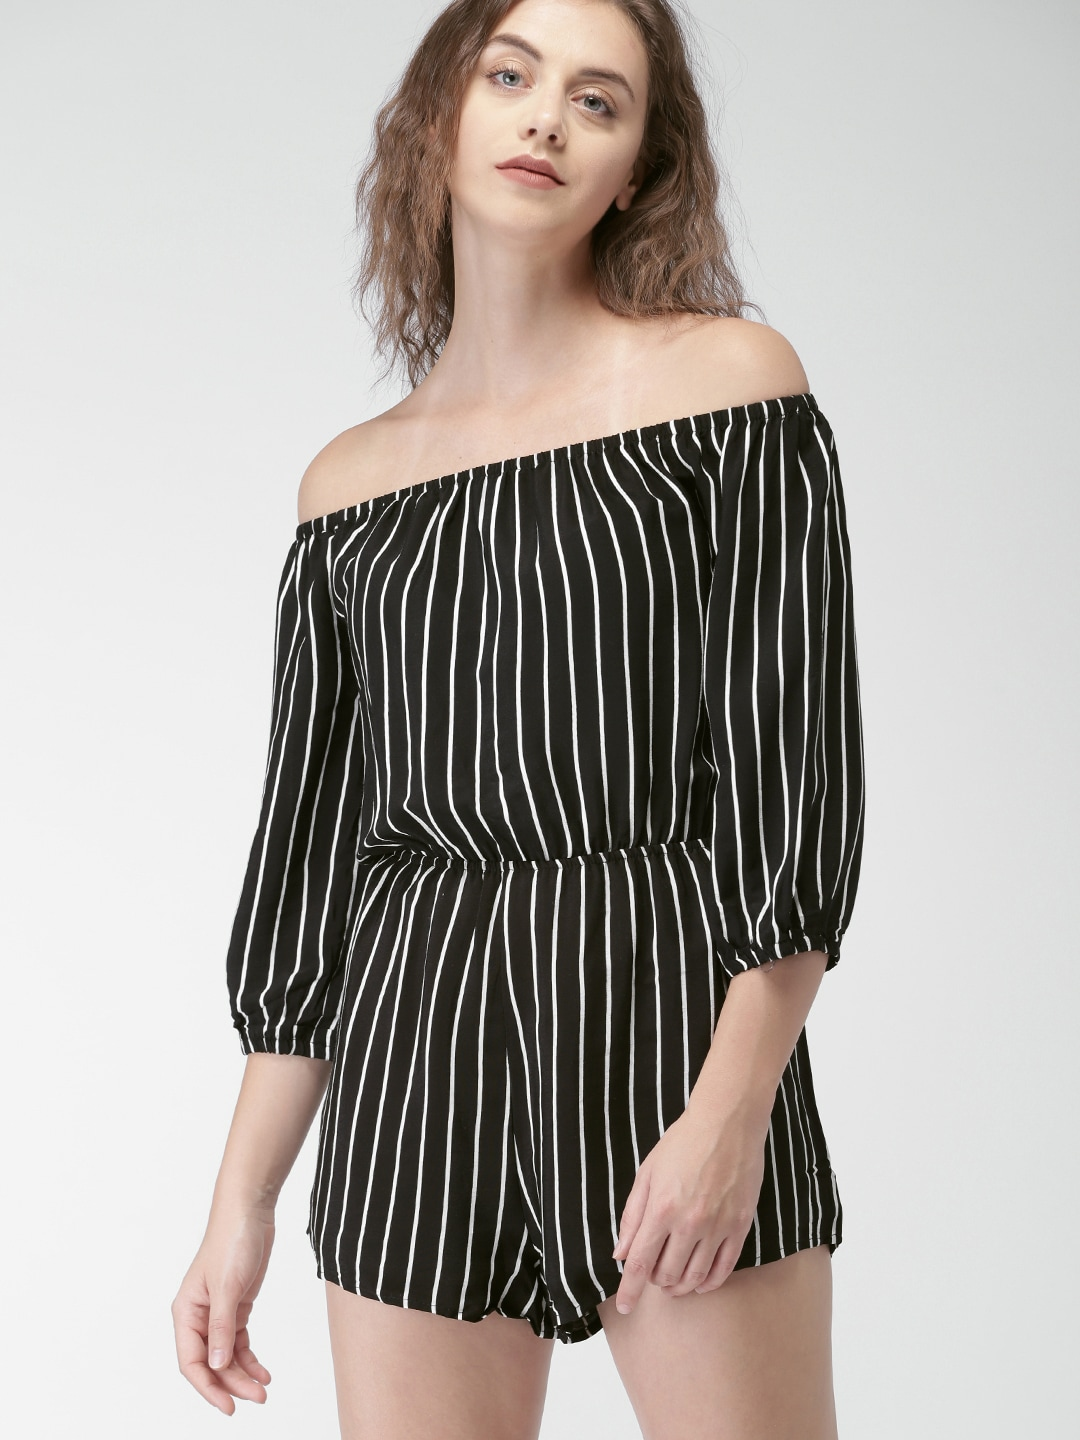 a2586e9c5a5 Forever 21 Jumpsuit - Buy Forever 21 Jumpsuit online in India